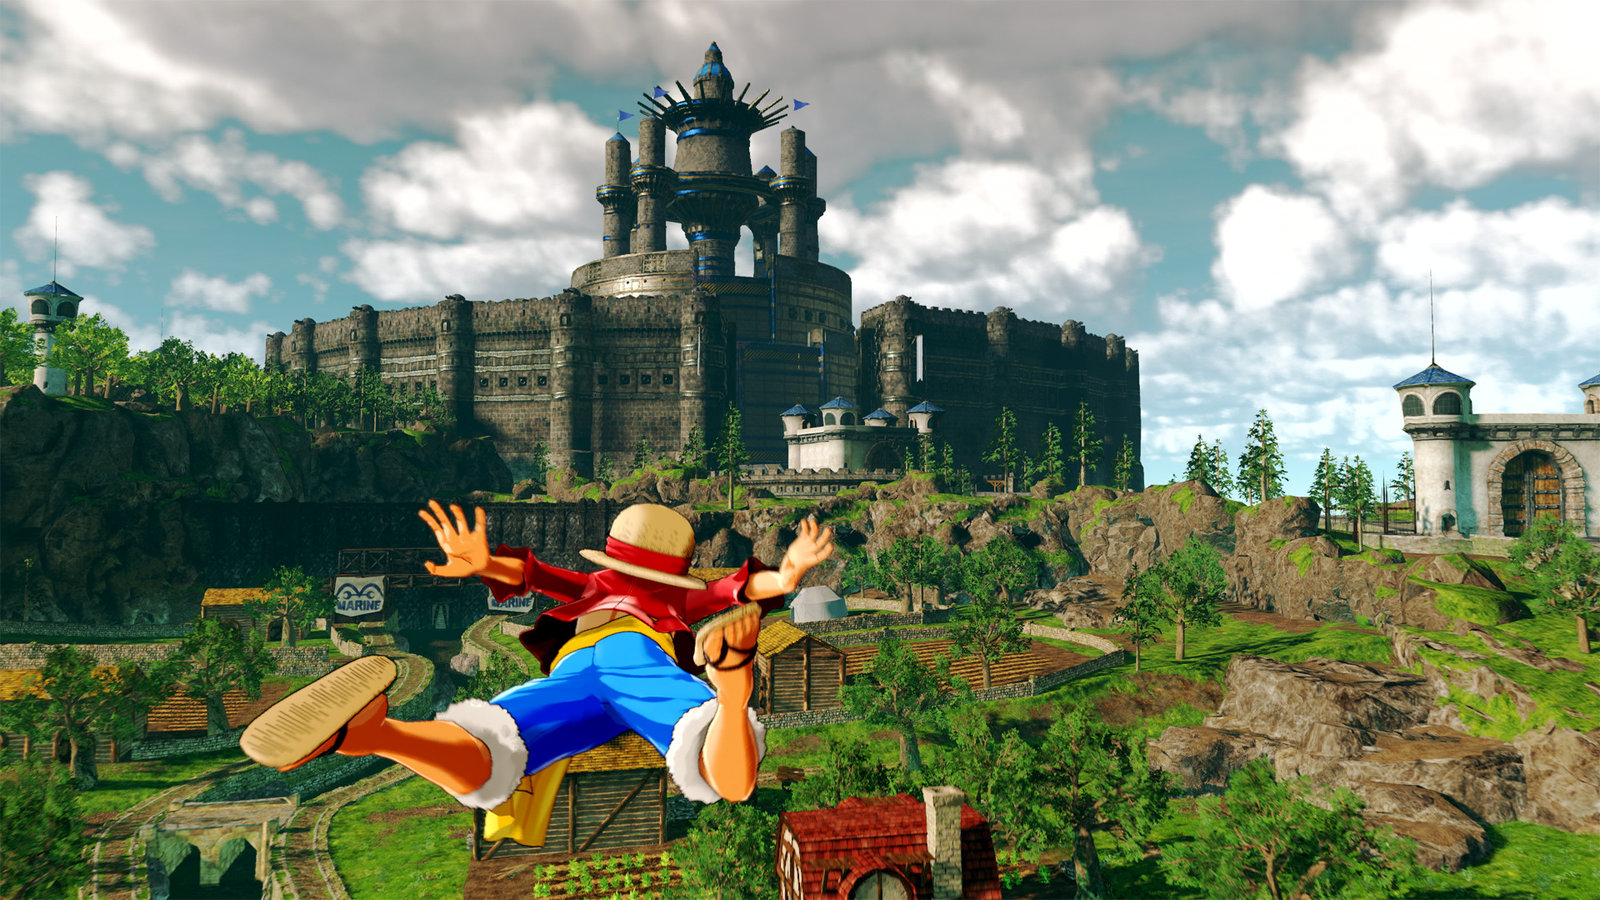 One Piece: World Seeker - Where Justice Lies image 1